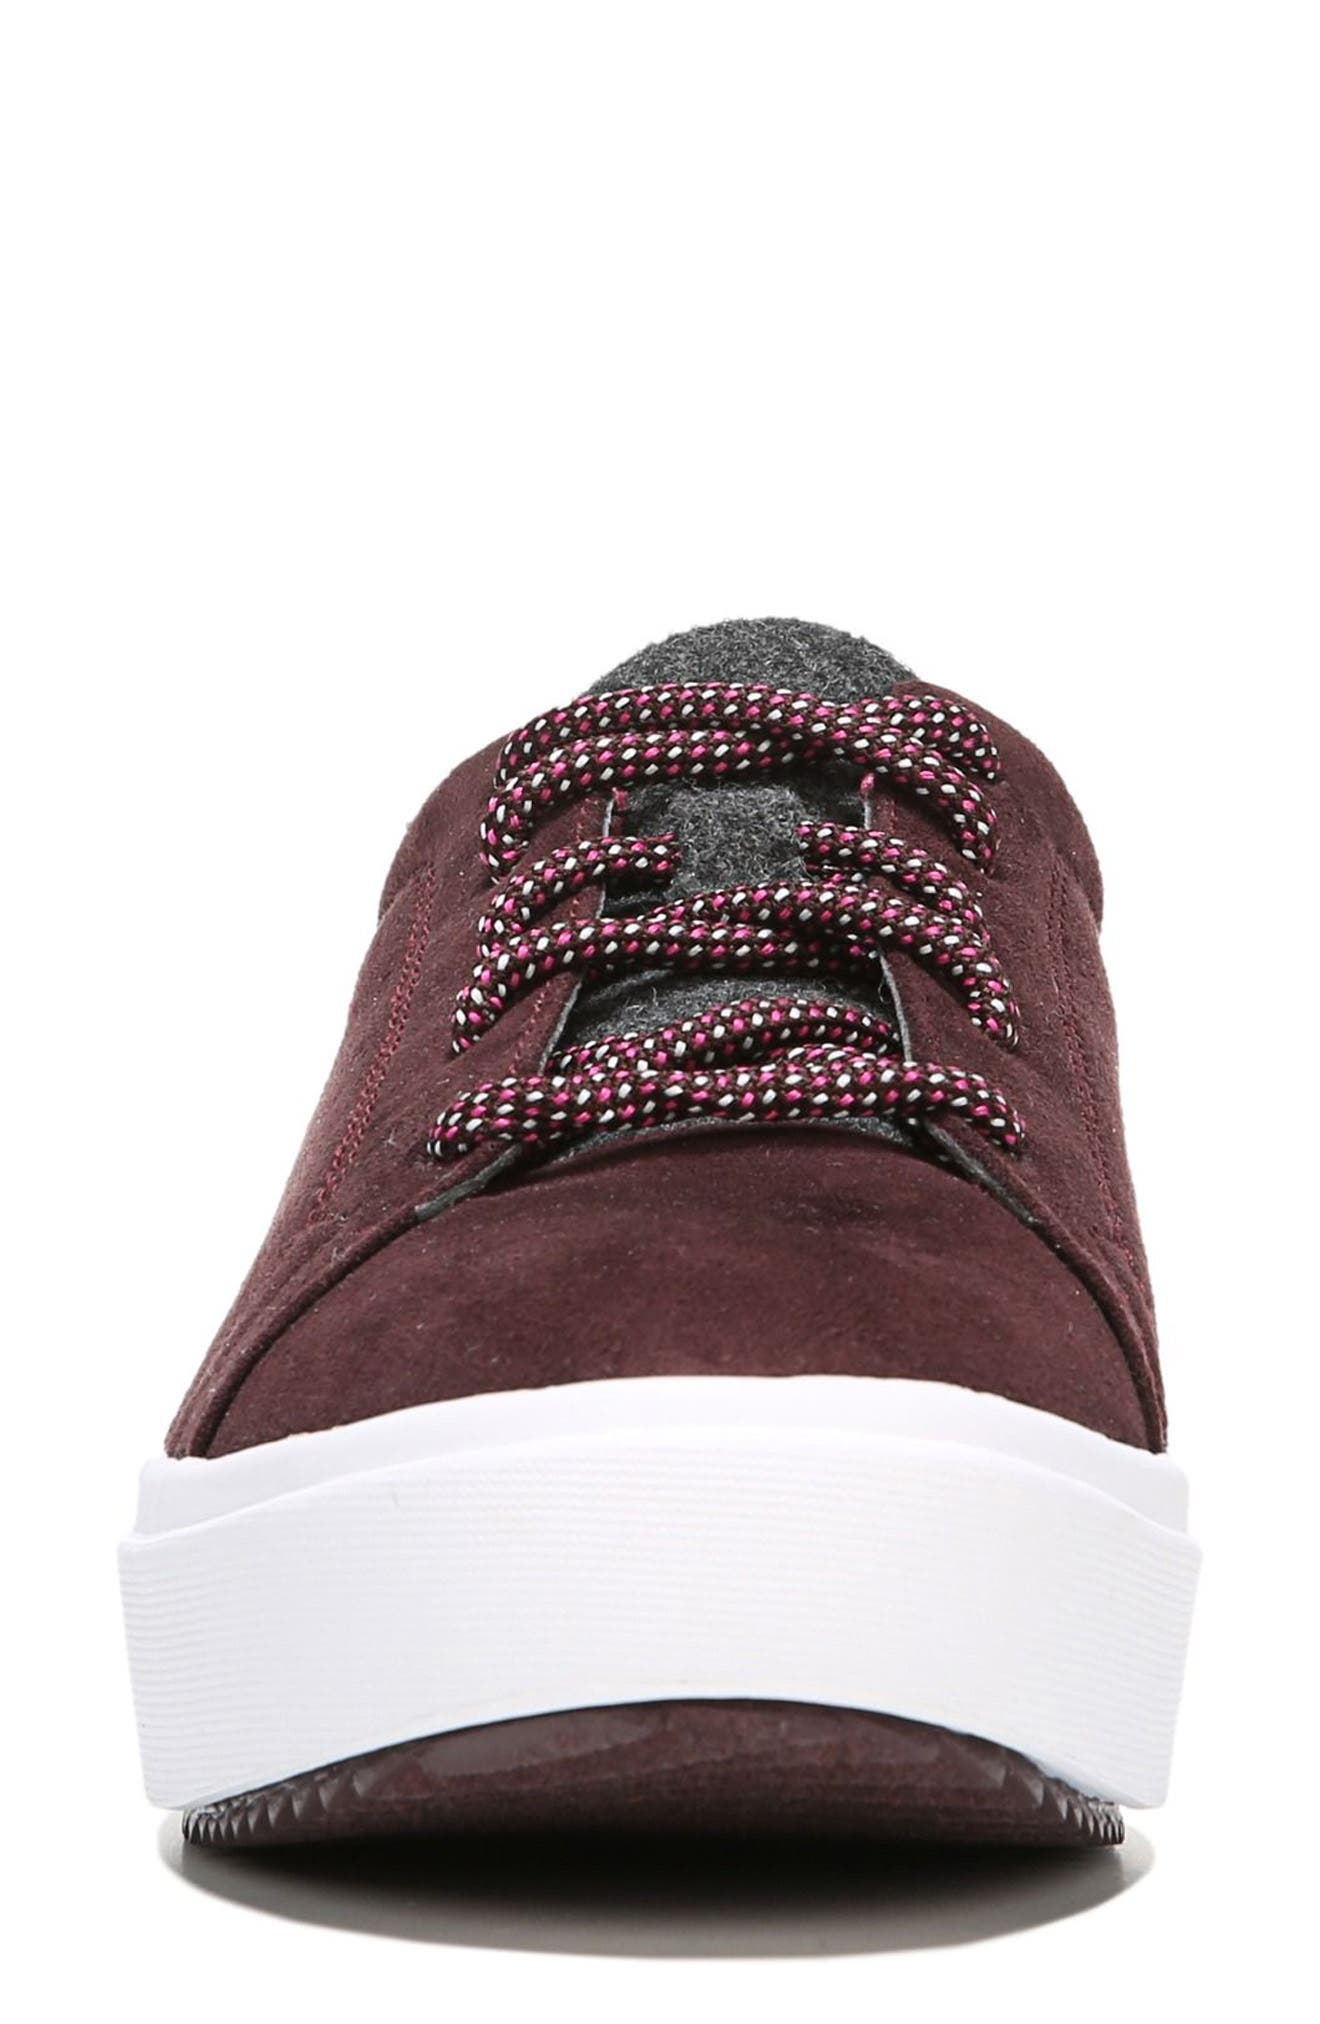 Wander Sneaker,                             Alternate thumbnail 4, color,                             Merlot Fabric